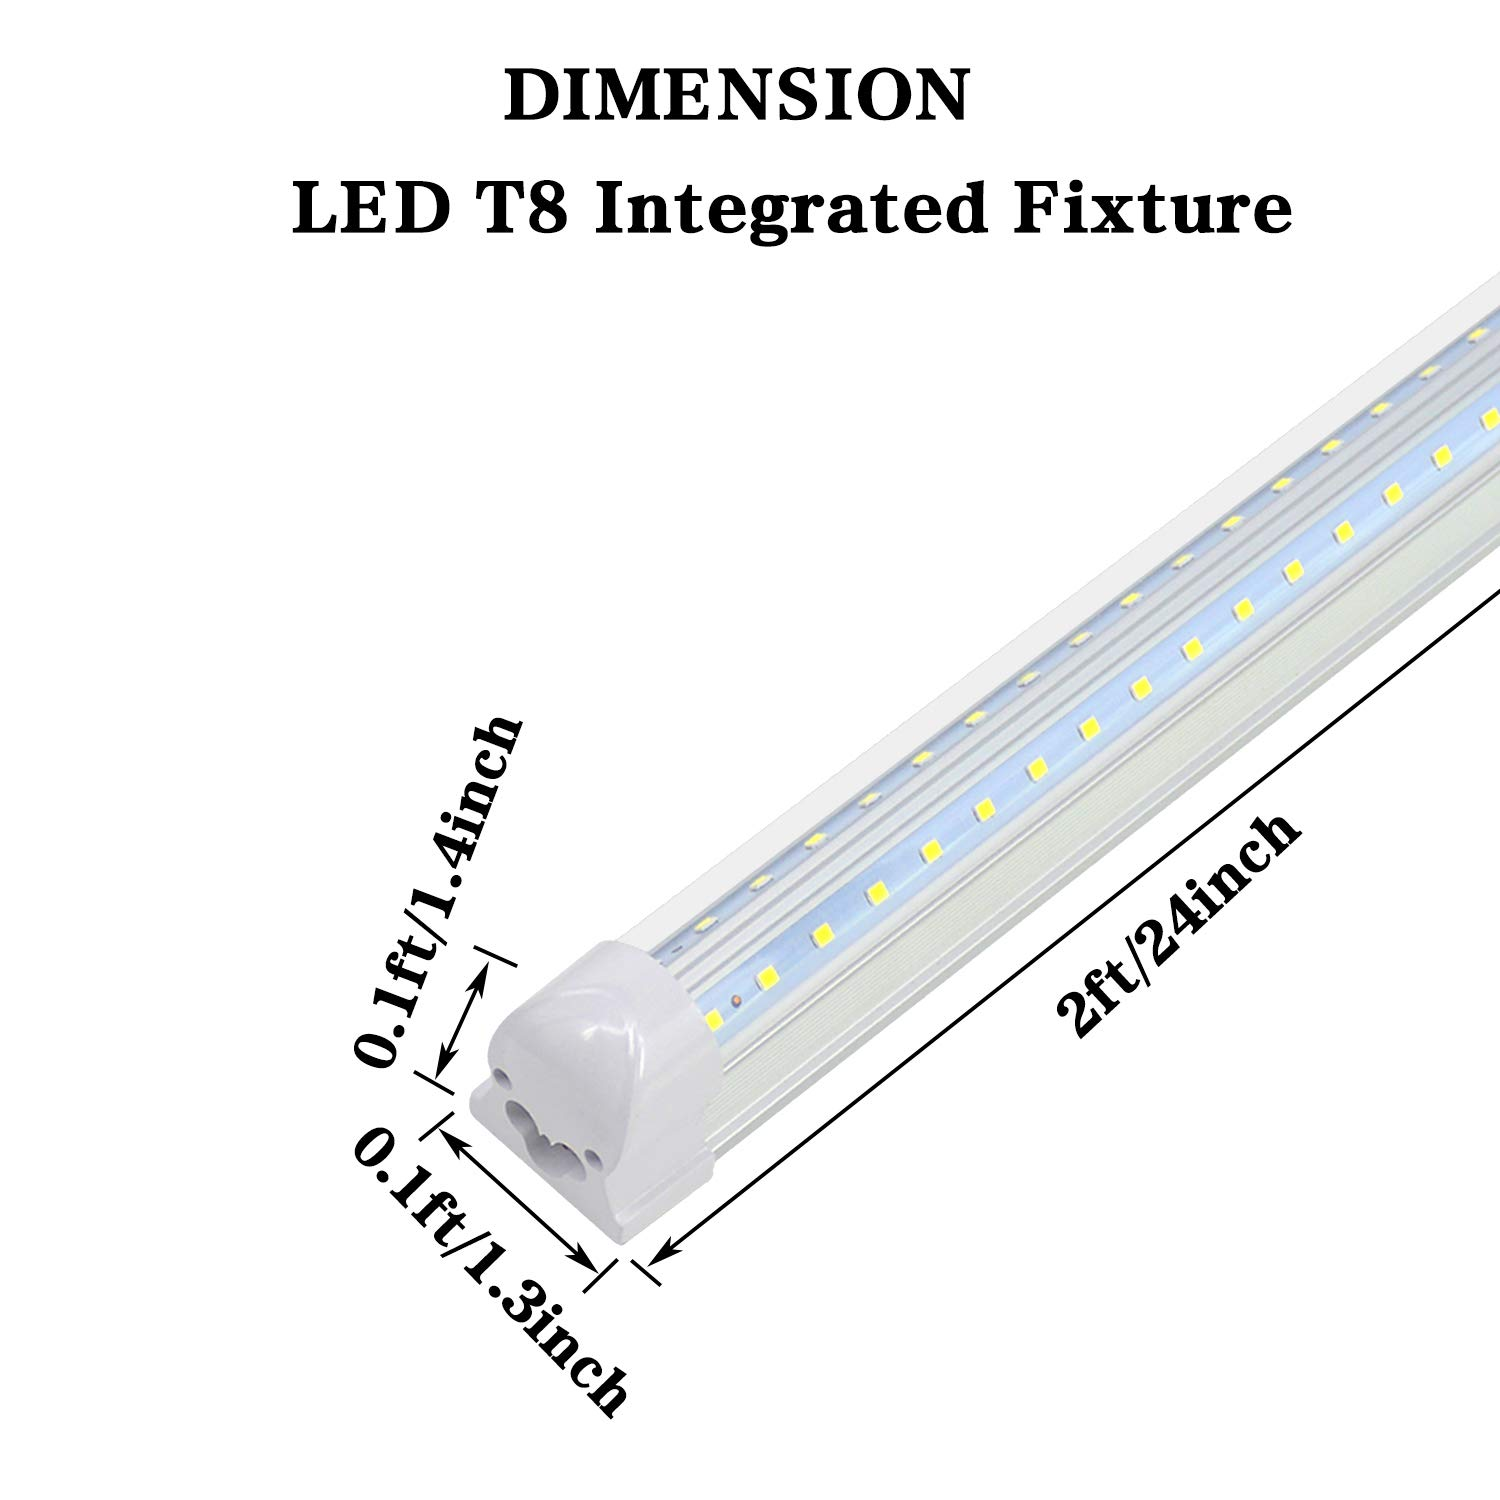 T8 Integrated Single Fixture - 2FT LED Light Fixture